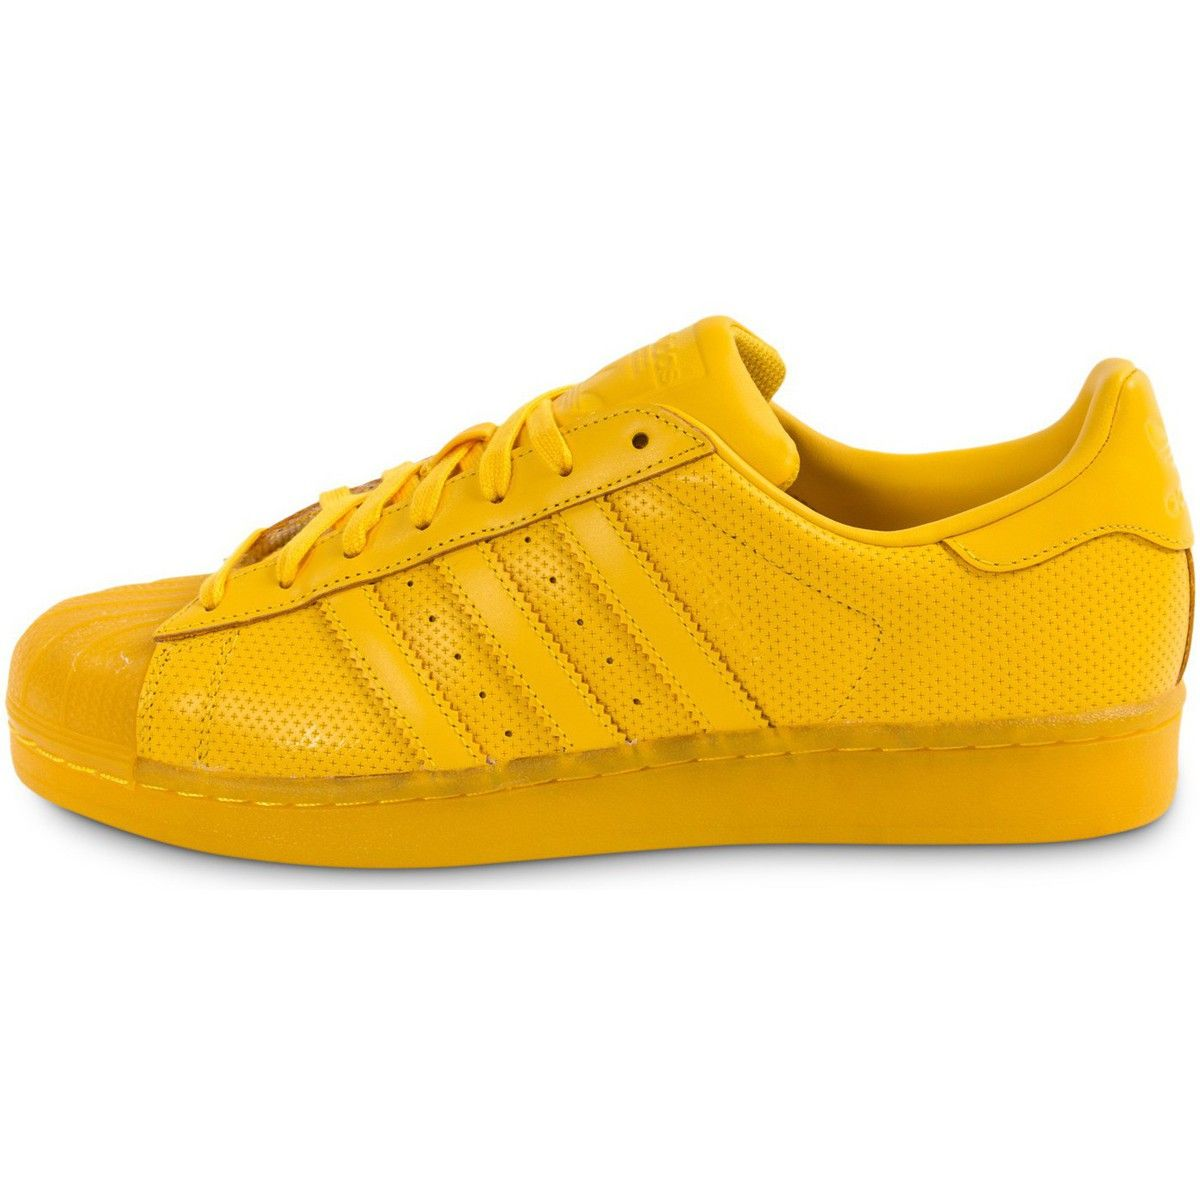 half off 91ba8 55ce5 adidas Originals Superstar Adicolor Jaune Jaune